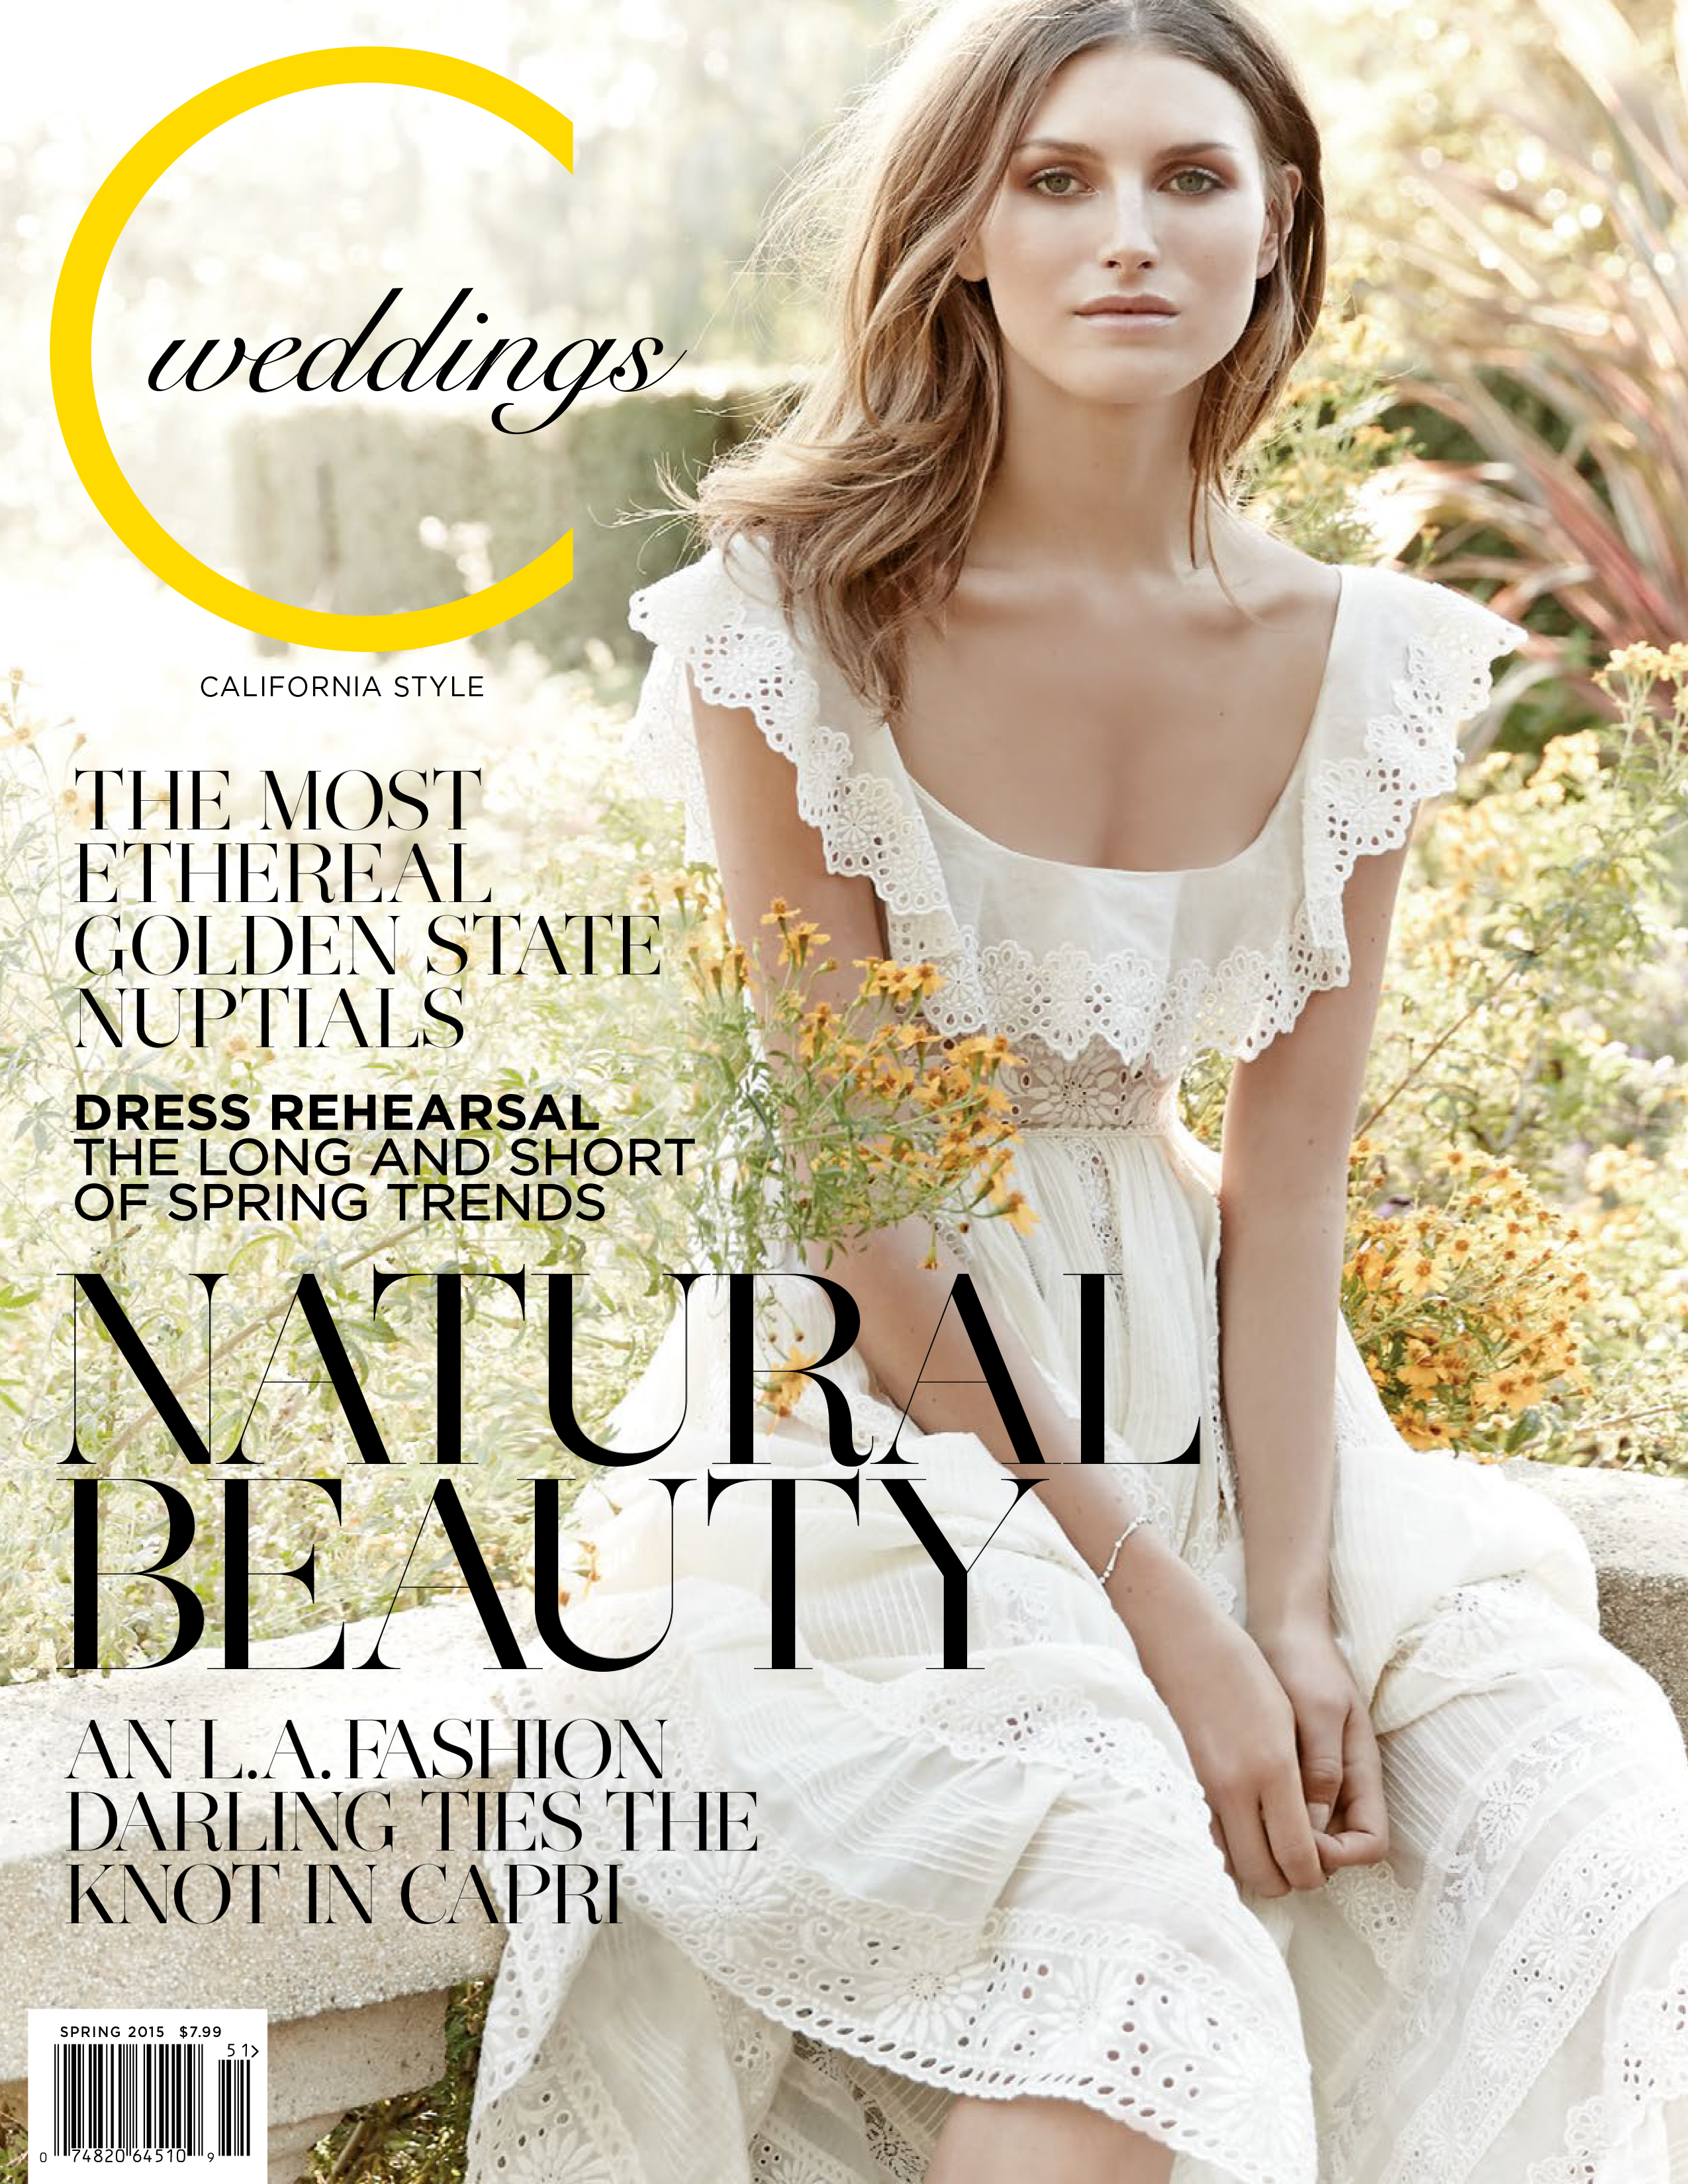 Image for C Weddings, Spring 2015